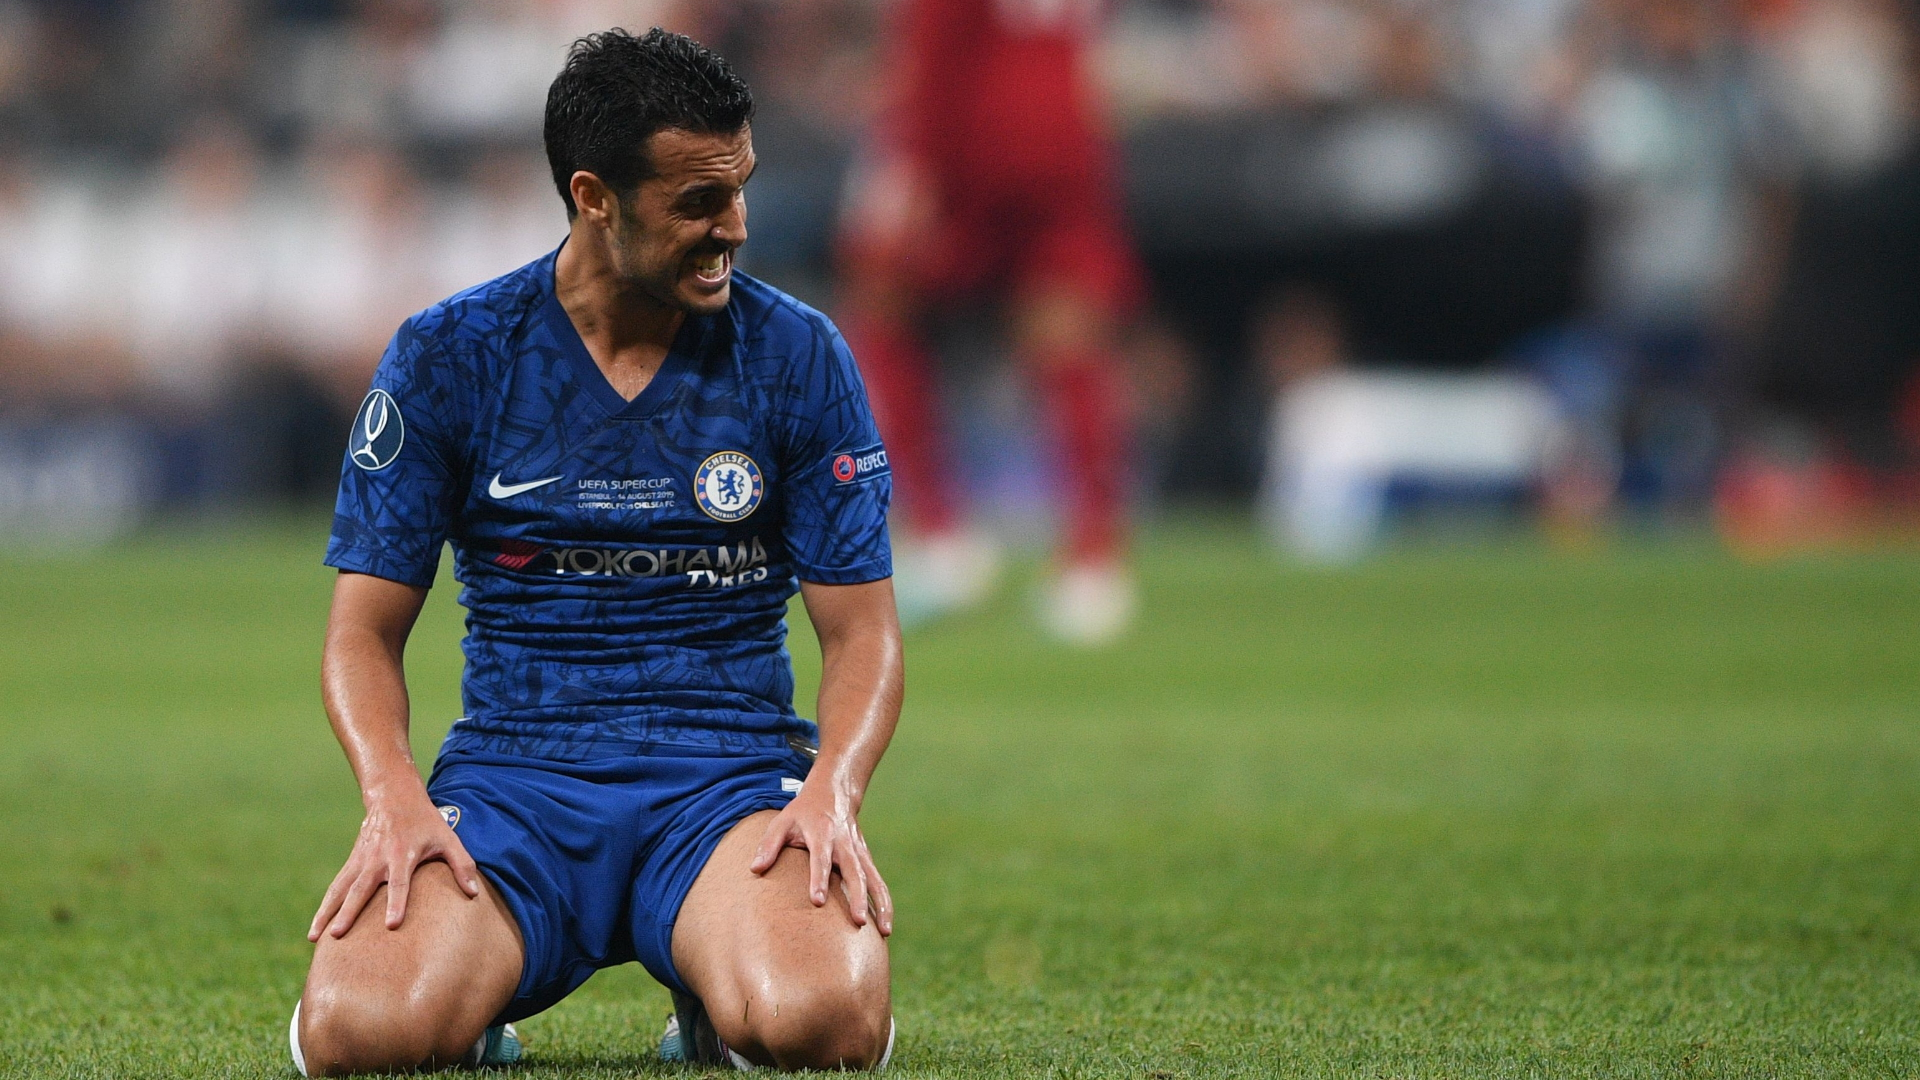 Pedro has offers to end 'hard' Chelsea spell as World Cup winner heads towards free agency